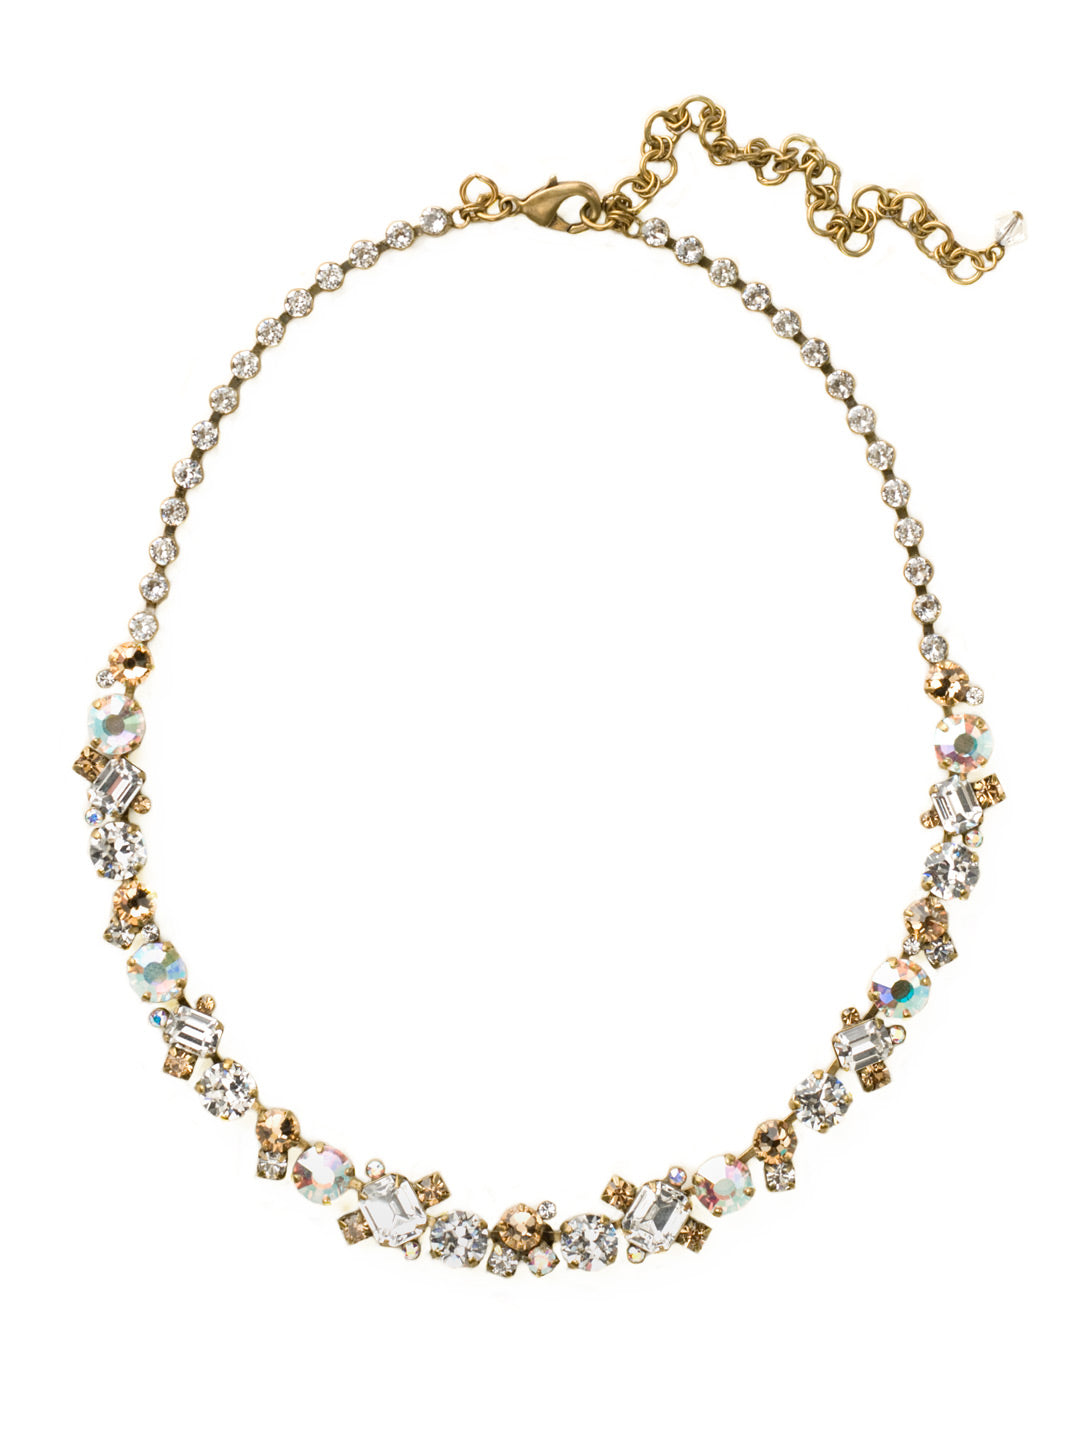 Glittering Multi-Cut Crystal Necklace - NCF6AGNT